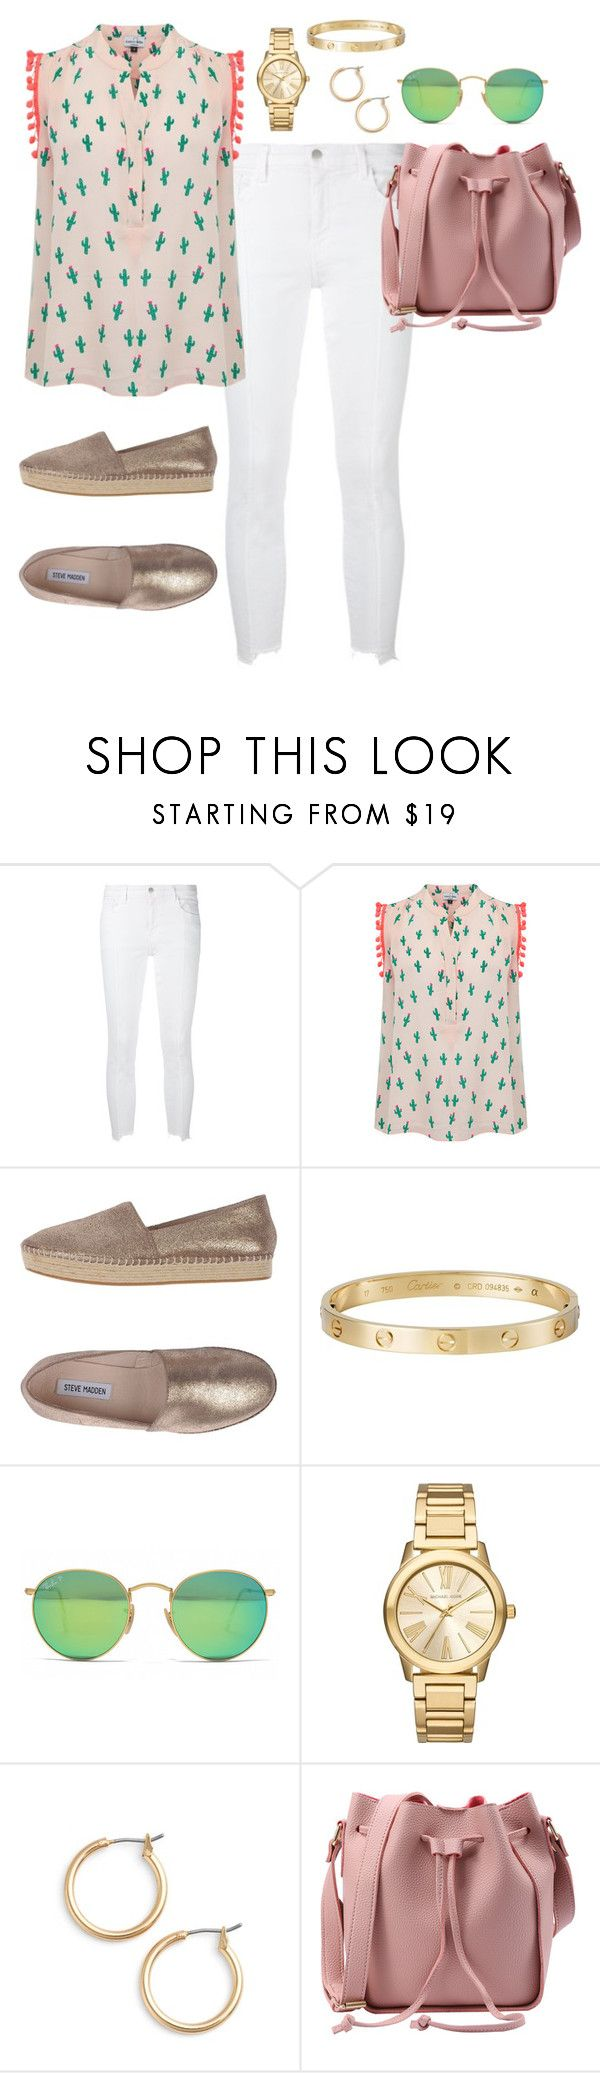 """""""outfit 293"""" by caa123 ❤ liked on Polyvore featuring J Brand, Mercy Delta, Steve Madden, Cartier, Ray-Ban, Michael Kors and Nordstrom"""